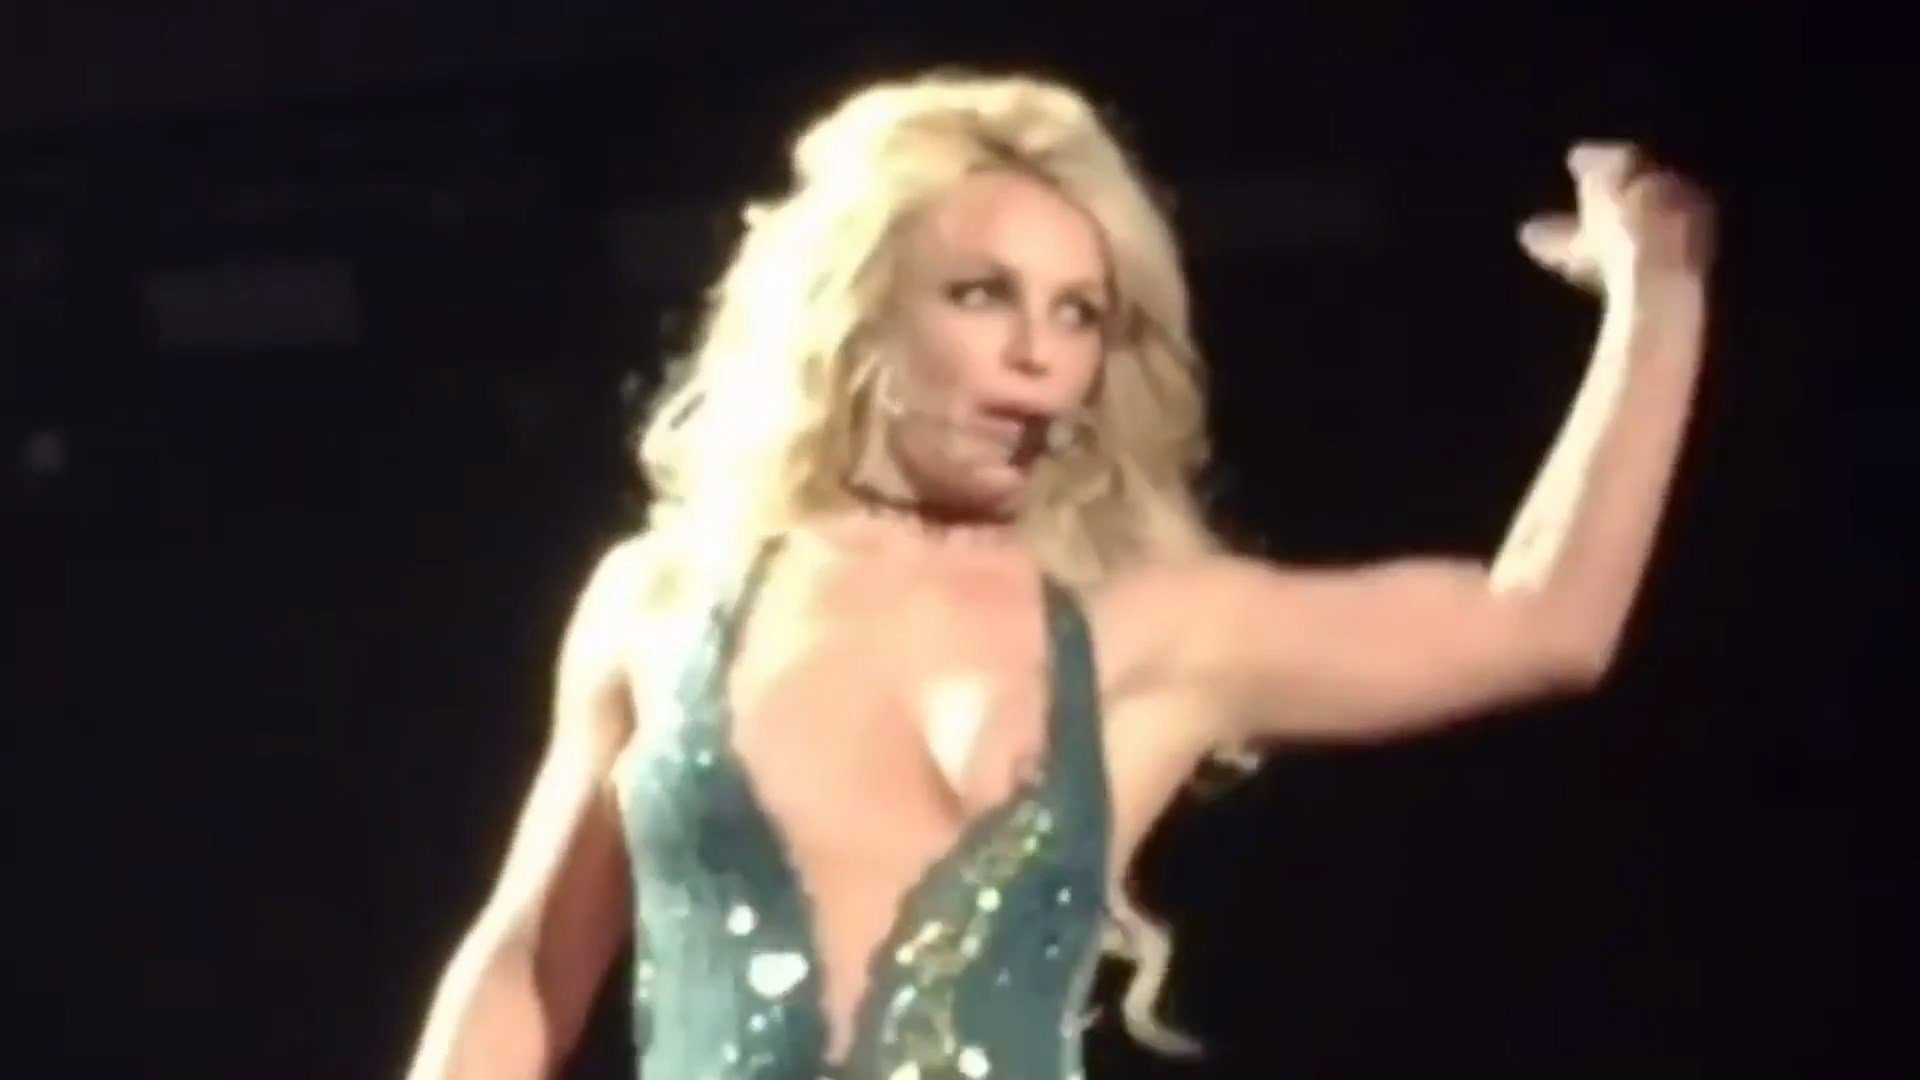 Britney spears pussy news